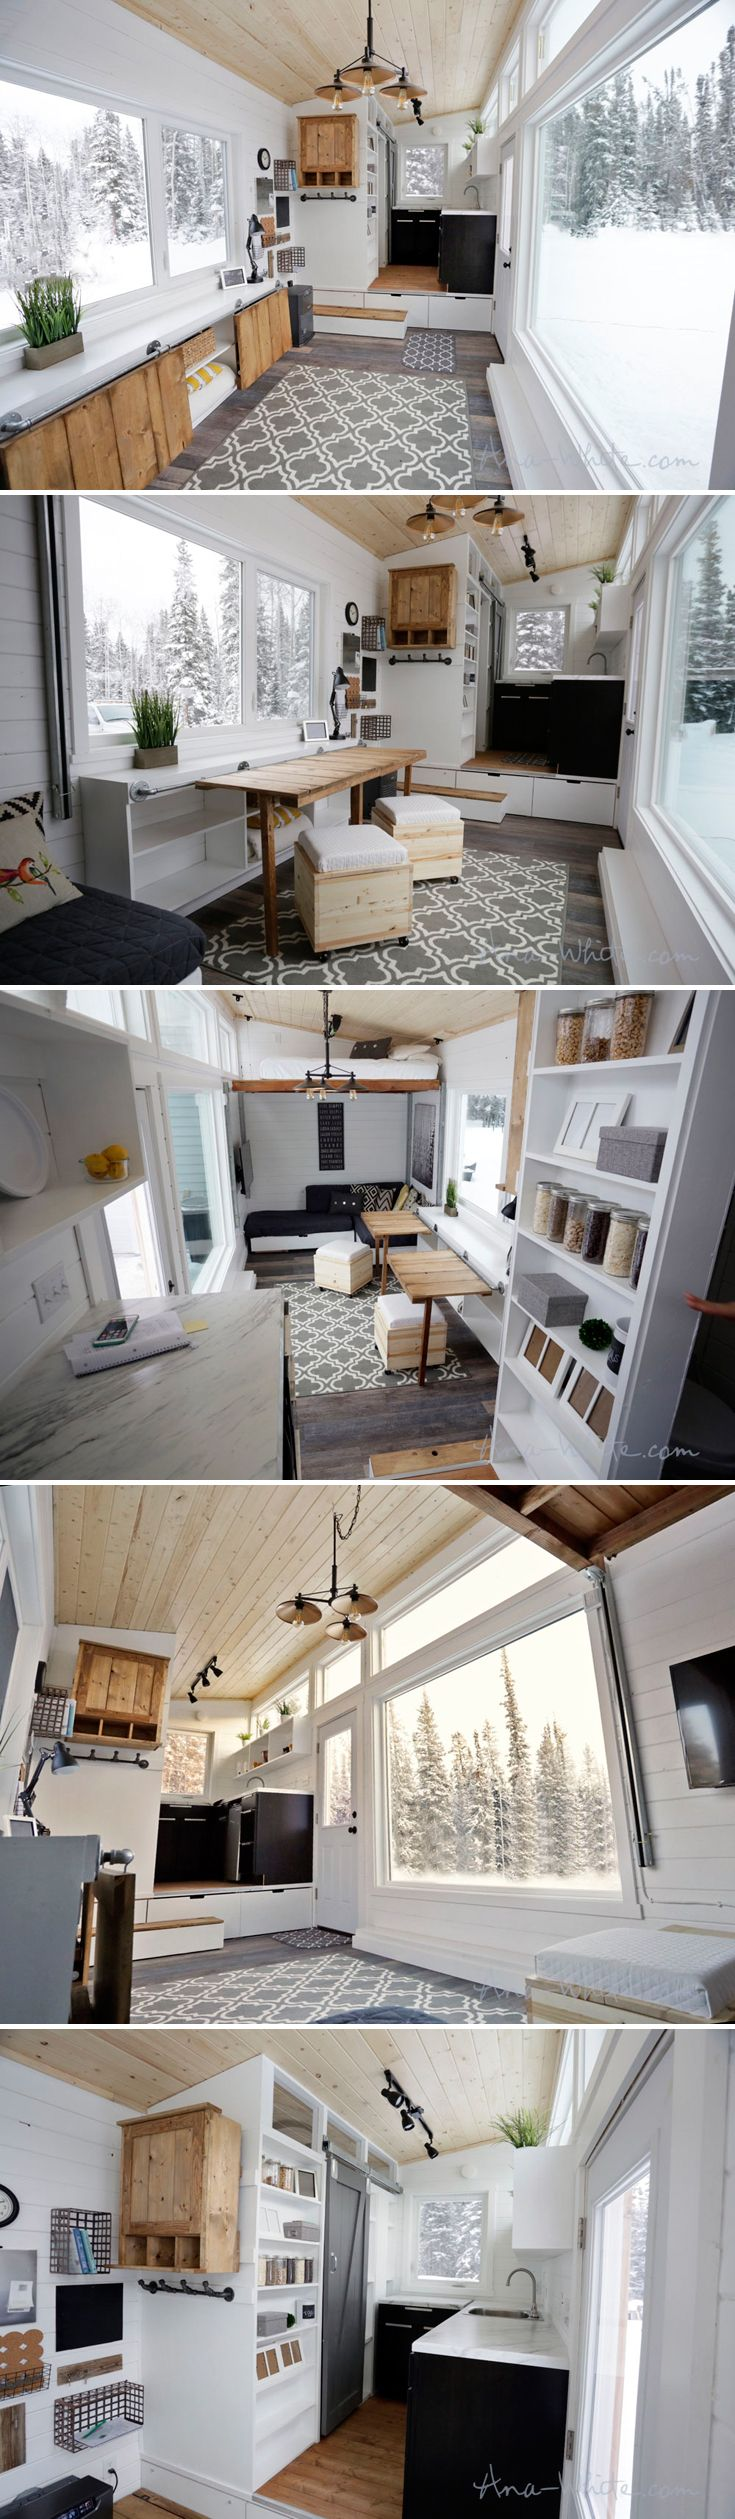 This open concept tiny house from Ana White has all sorts of hidden storage space and multifunction furniture. The rustic modern 24-foot tiny home was designed and built by Ana and her husband in Alaska.